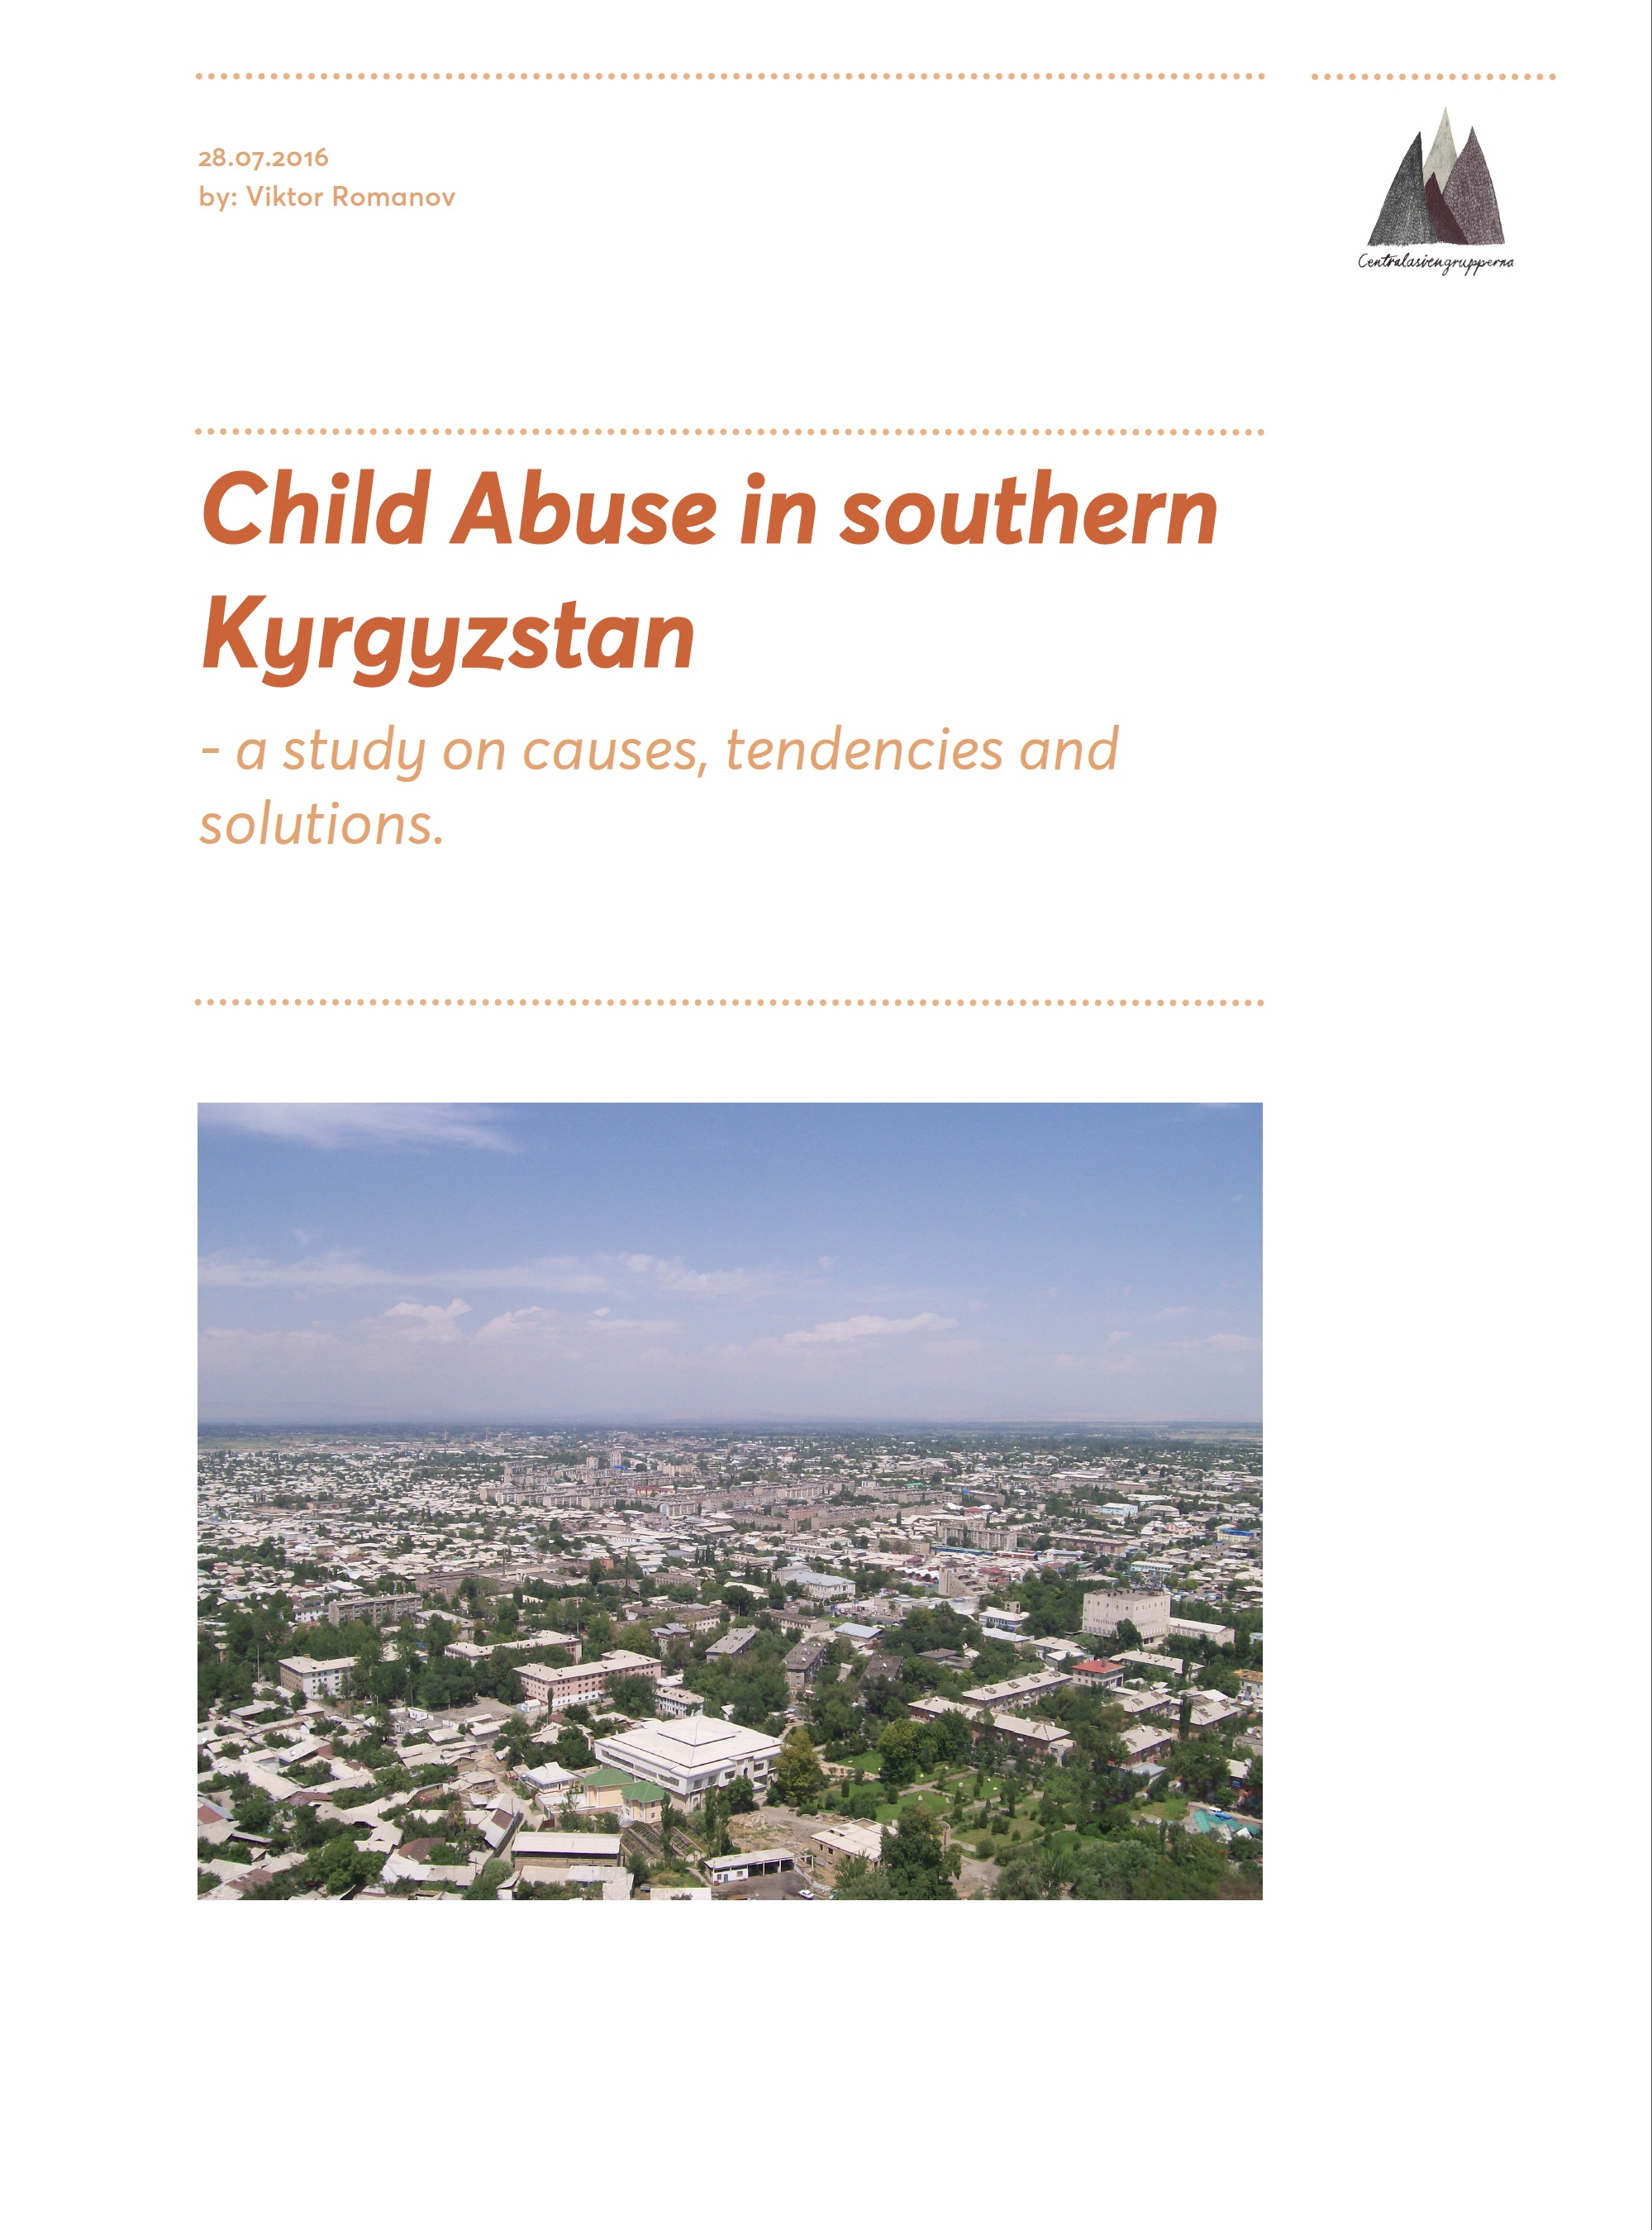 Child Abuse in southern Kyrgyzstan